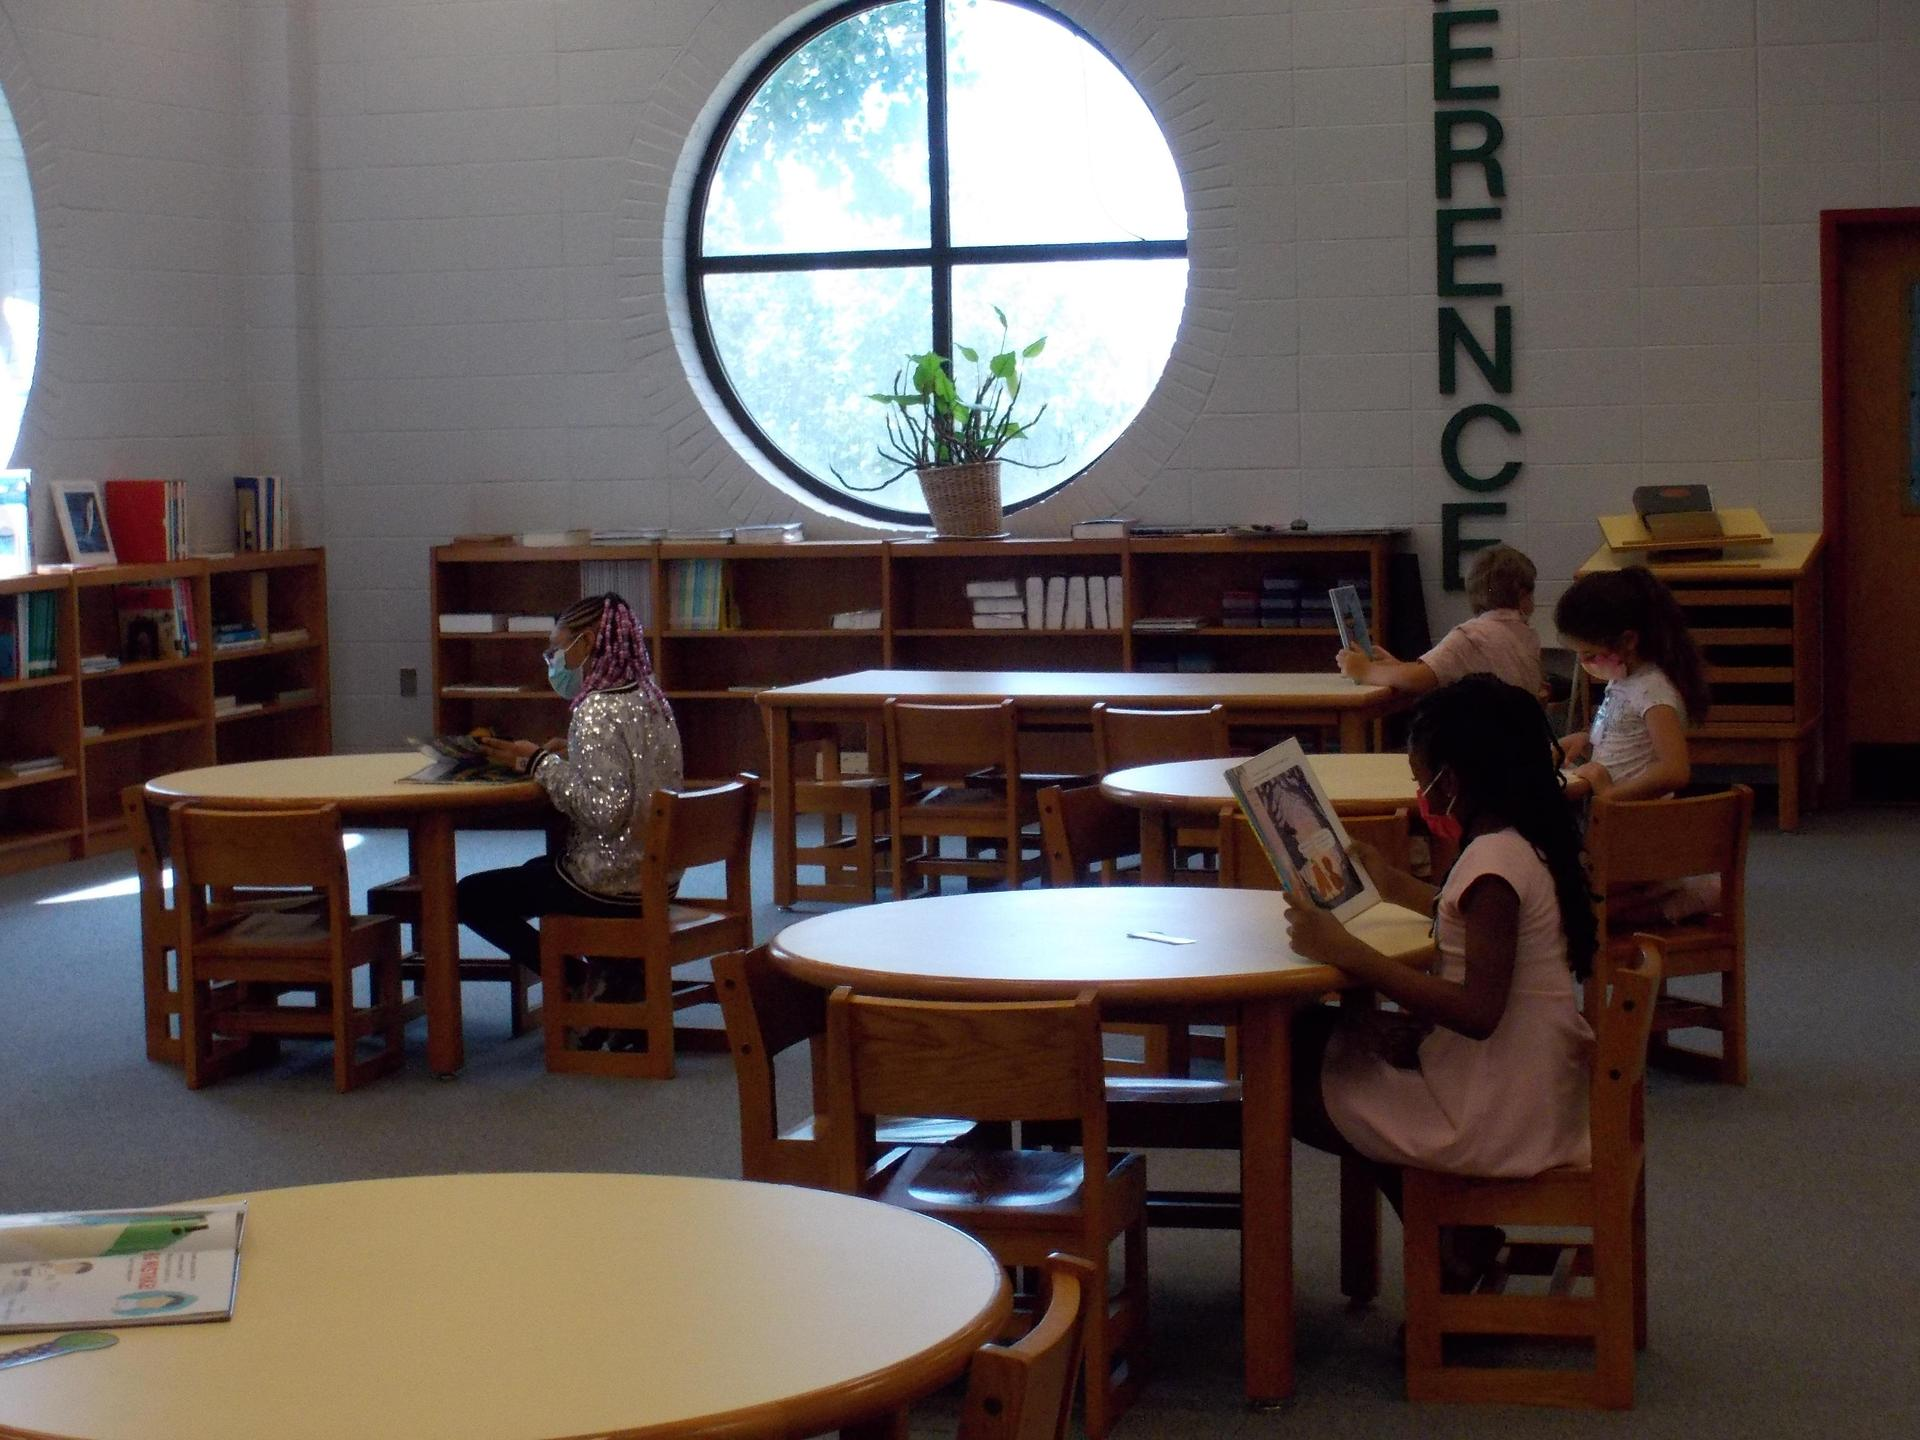 Reading at the tables in the library